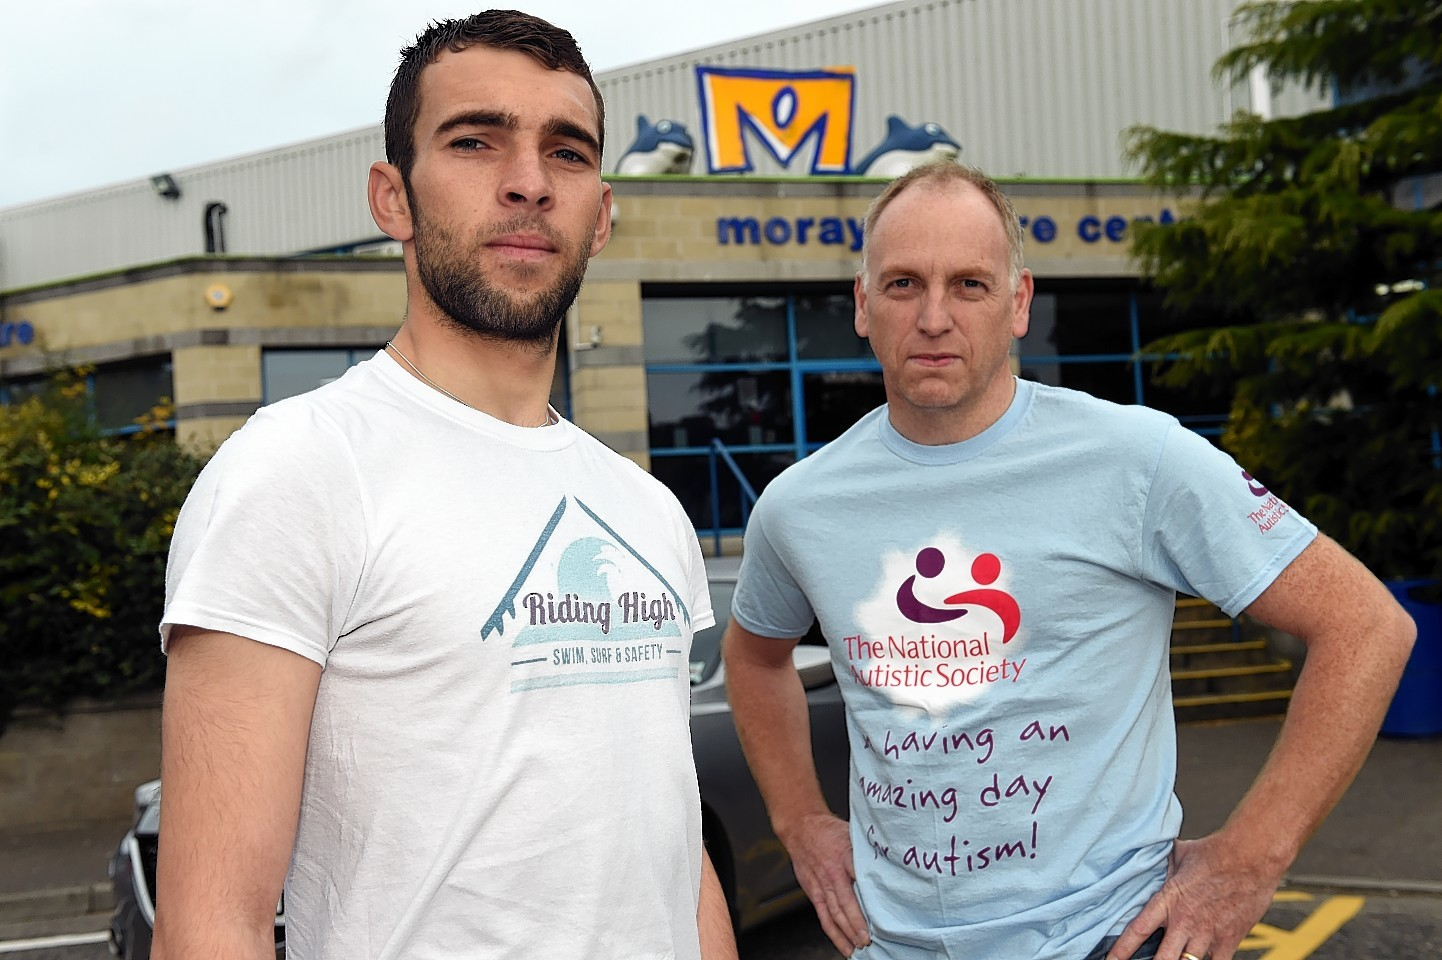 Kev Anderson, left, with Glyn Morris, chairman of the National Autistic Society outside the Moray Leisure Centre in Elgin